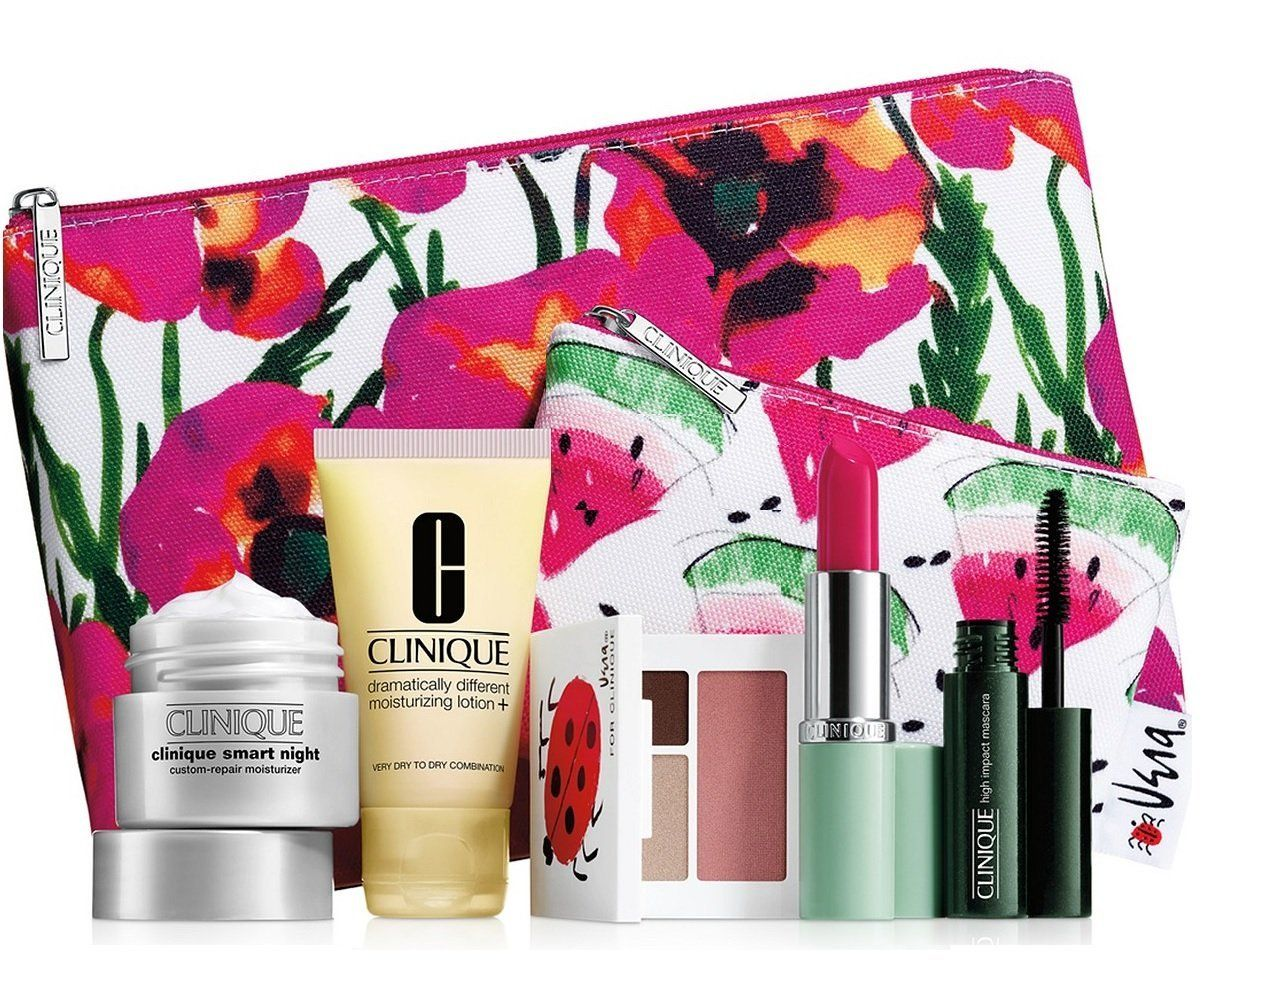 New 2016 Clinique 7 pc Makeup Skincare Gift Set Pink